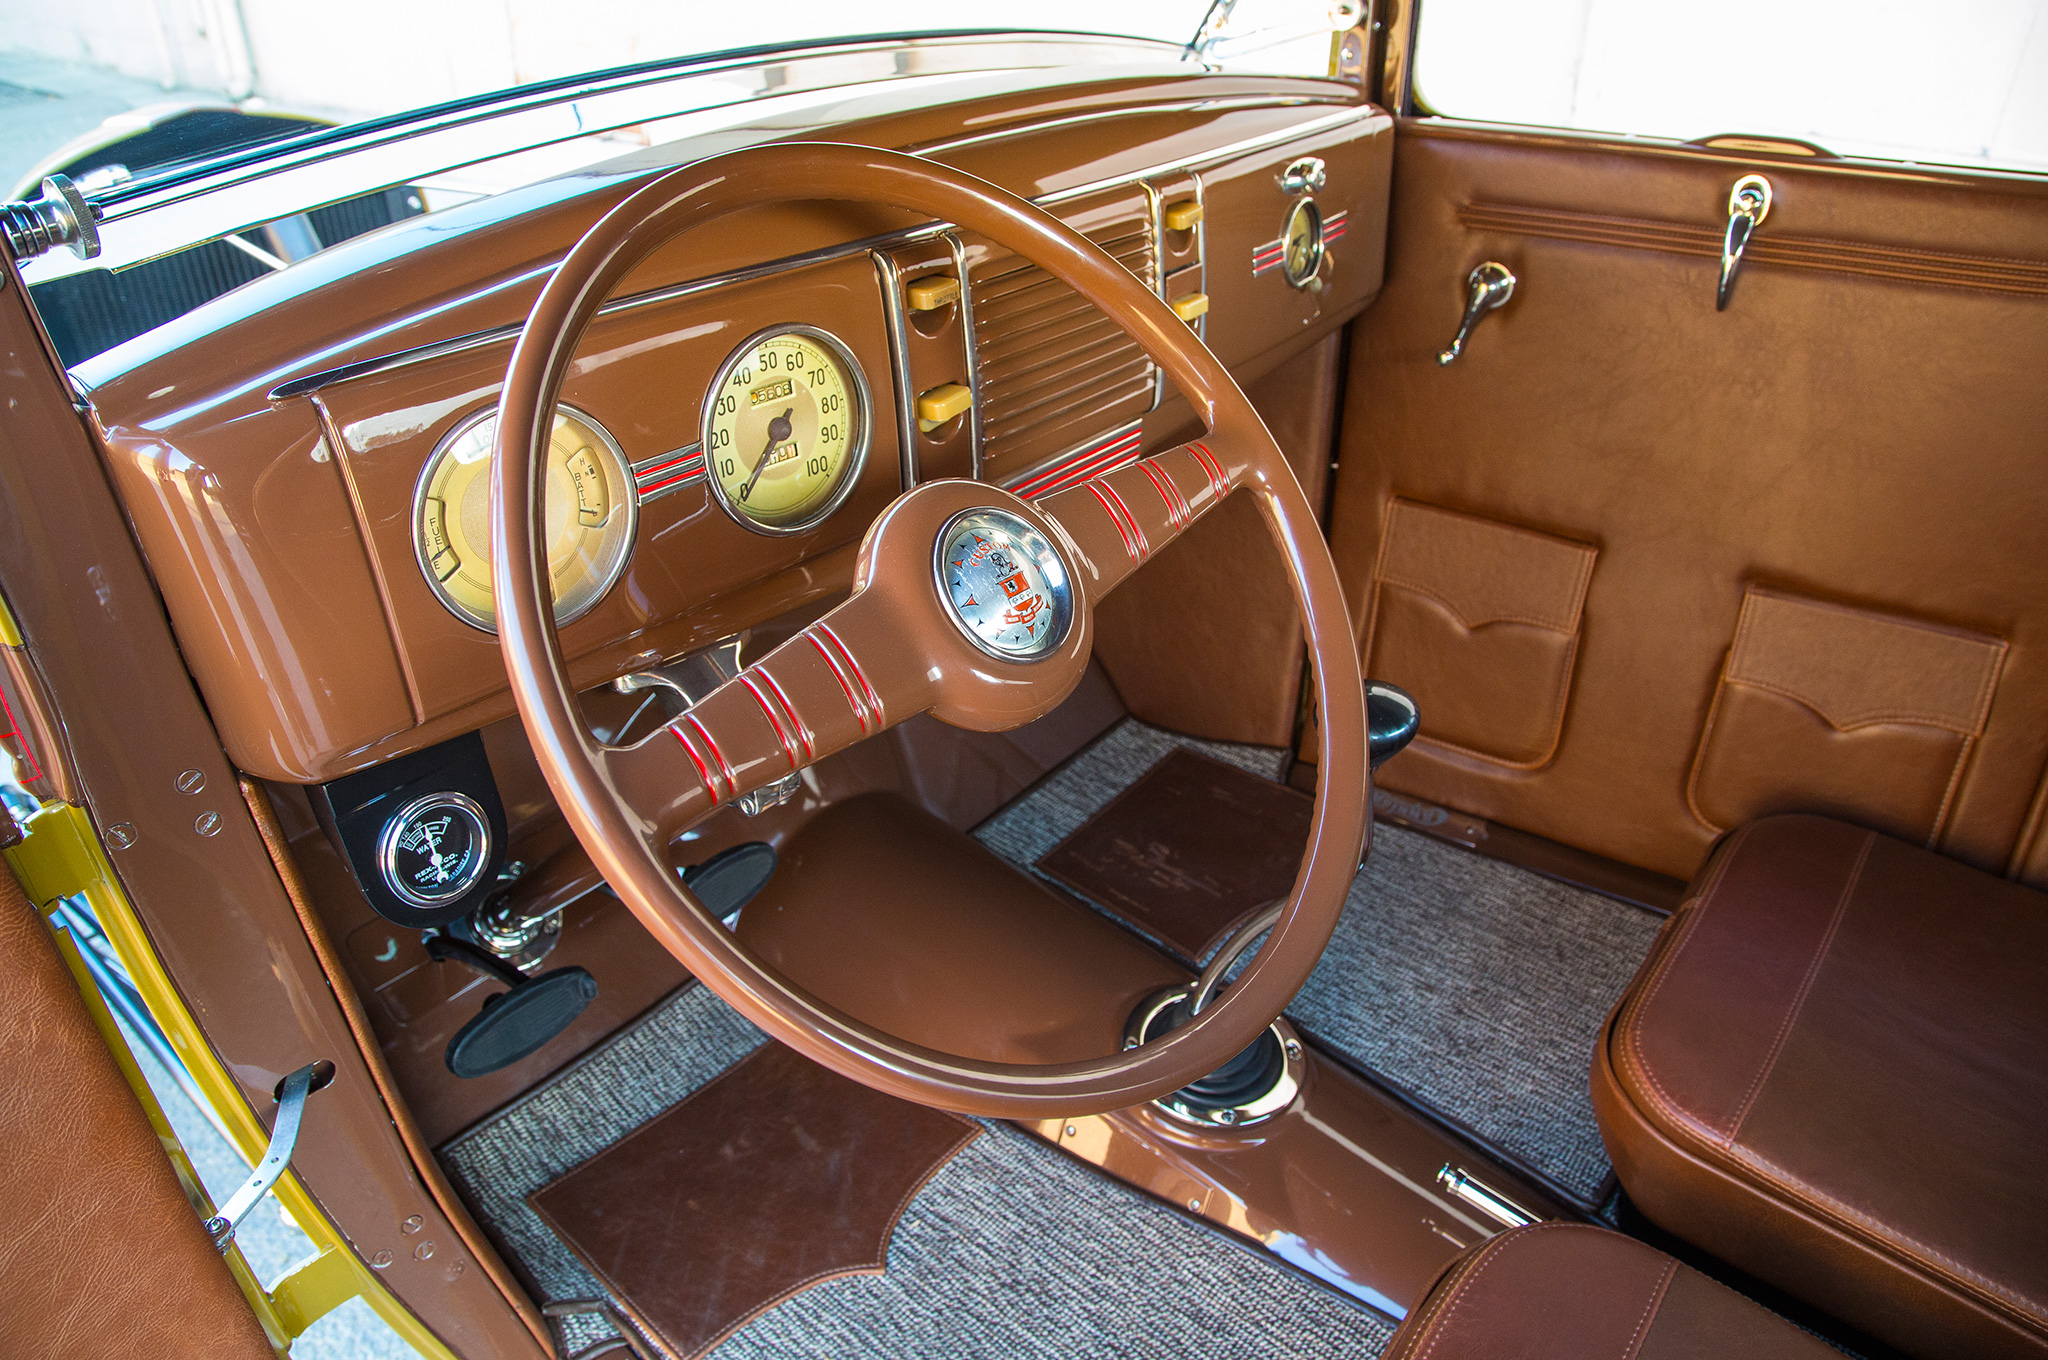 Leonard Knight donated the '39 Ford dashboard and gauges from one of his cars, while the steering wheel is a boat wheel made by Shelling and adapted to work with the F-100 column.